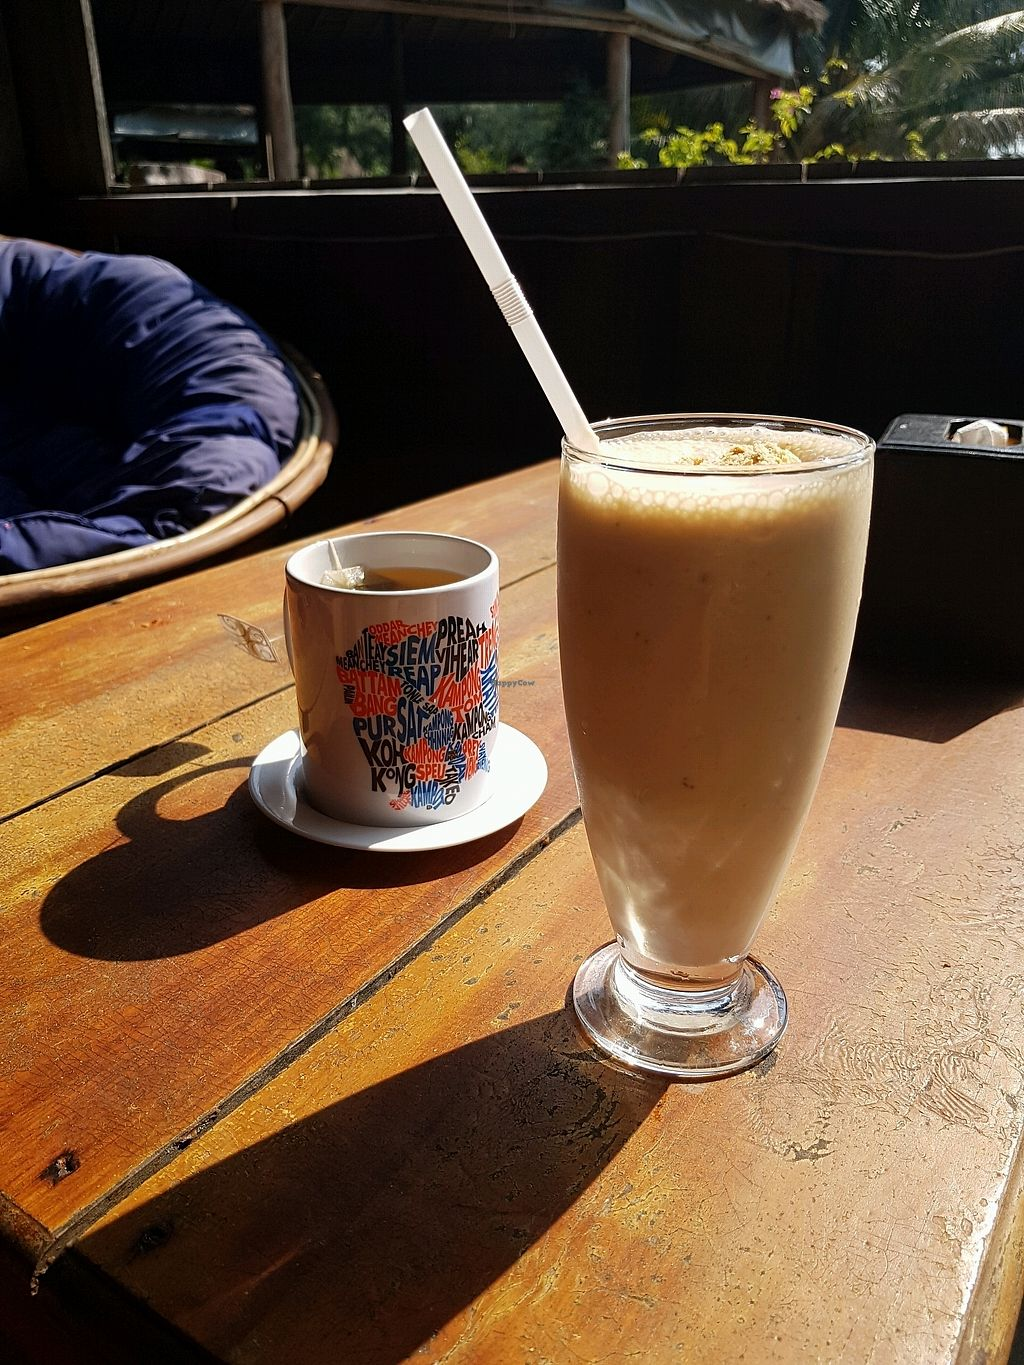 """Photo of Lazy Beach  by <a href=""""/members/profile/vegatleticas"""">vegatleticas</a> <br/>Banana and Peanut Butter shake <br/> February 24, 2018  - <a href='/contact/abuse/image/82463/362996'>Report</a>"""